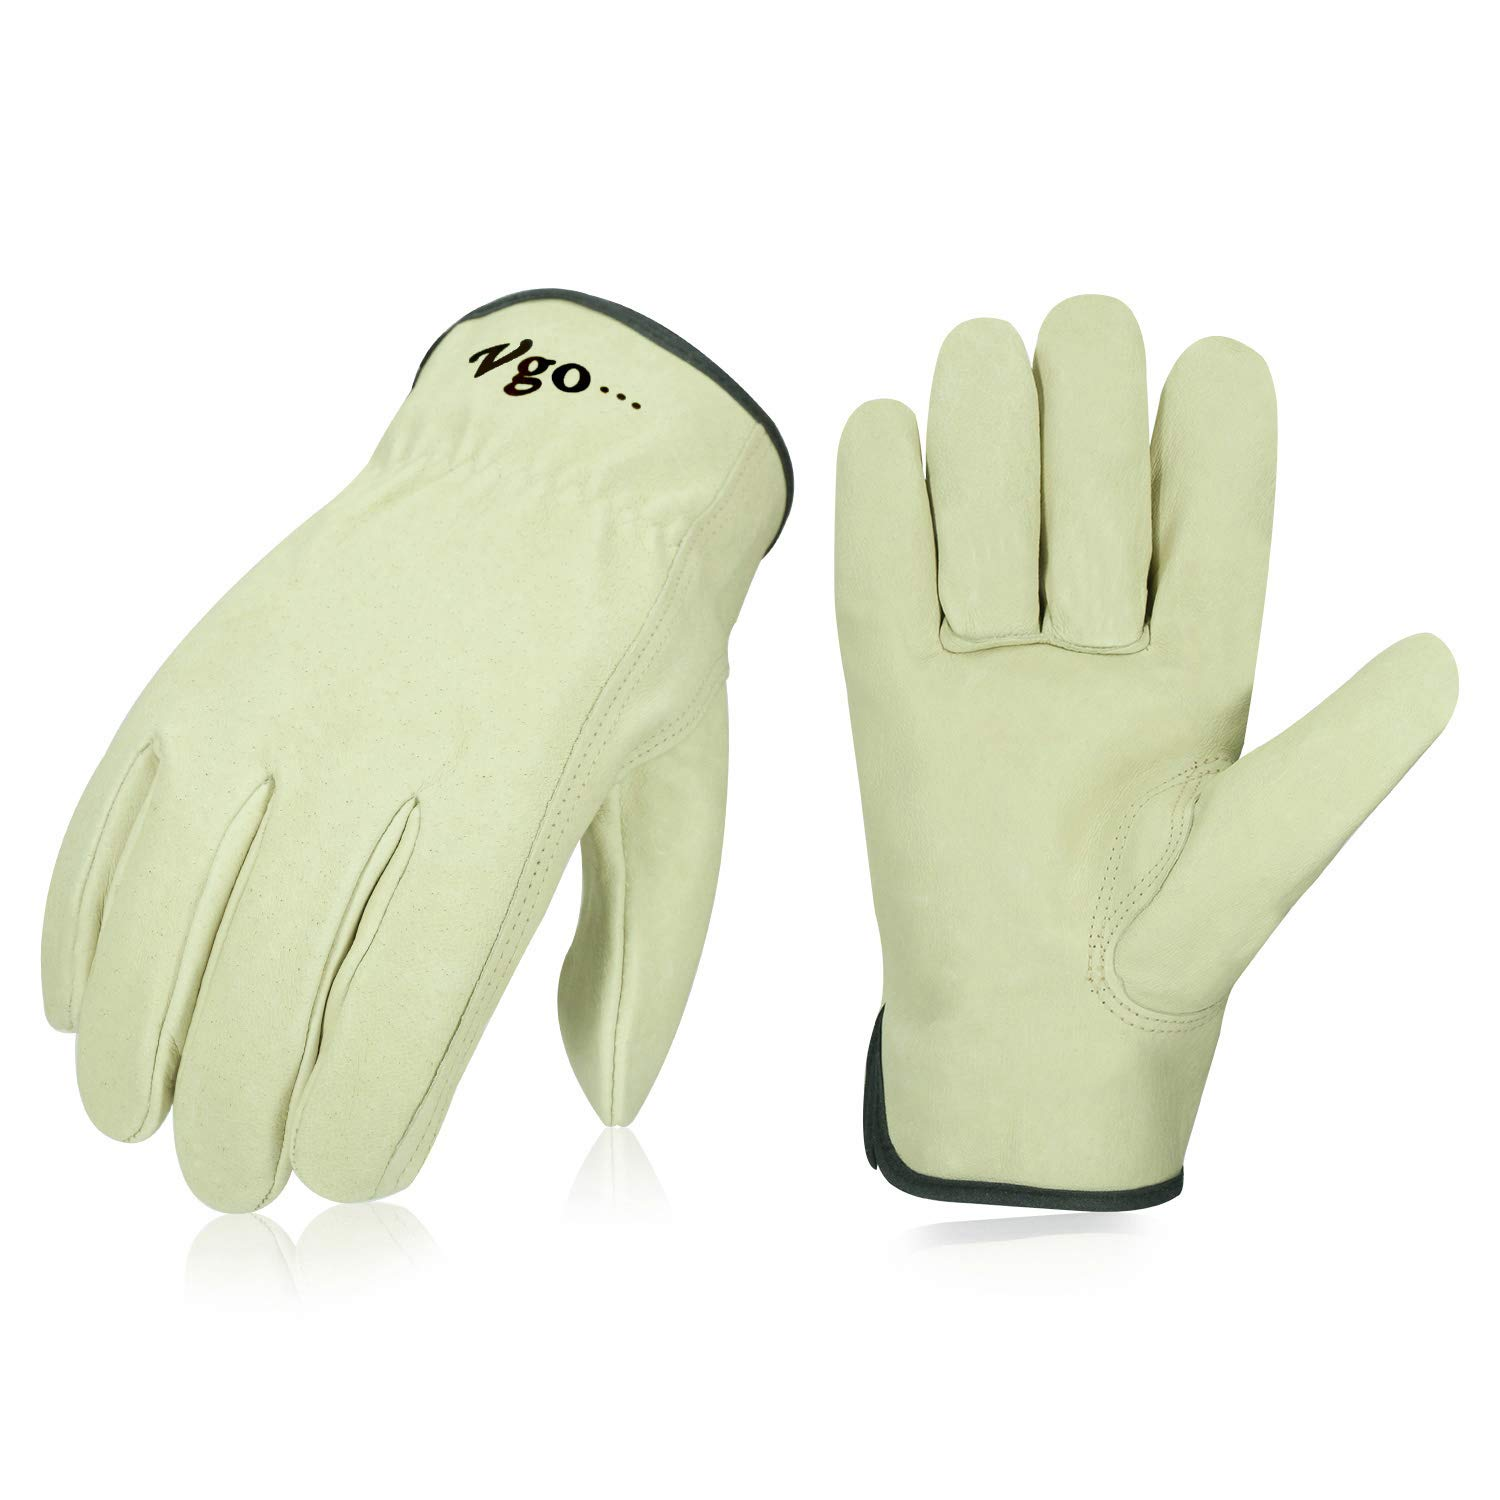 Vgo 3Pairs Unlined Men's Pigskin Leather Work Gloves, Drivers Gloves(Size M,Light Cyan,PA9501) by Vgo... (Image #1)